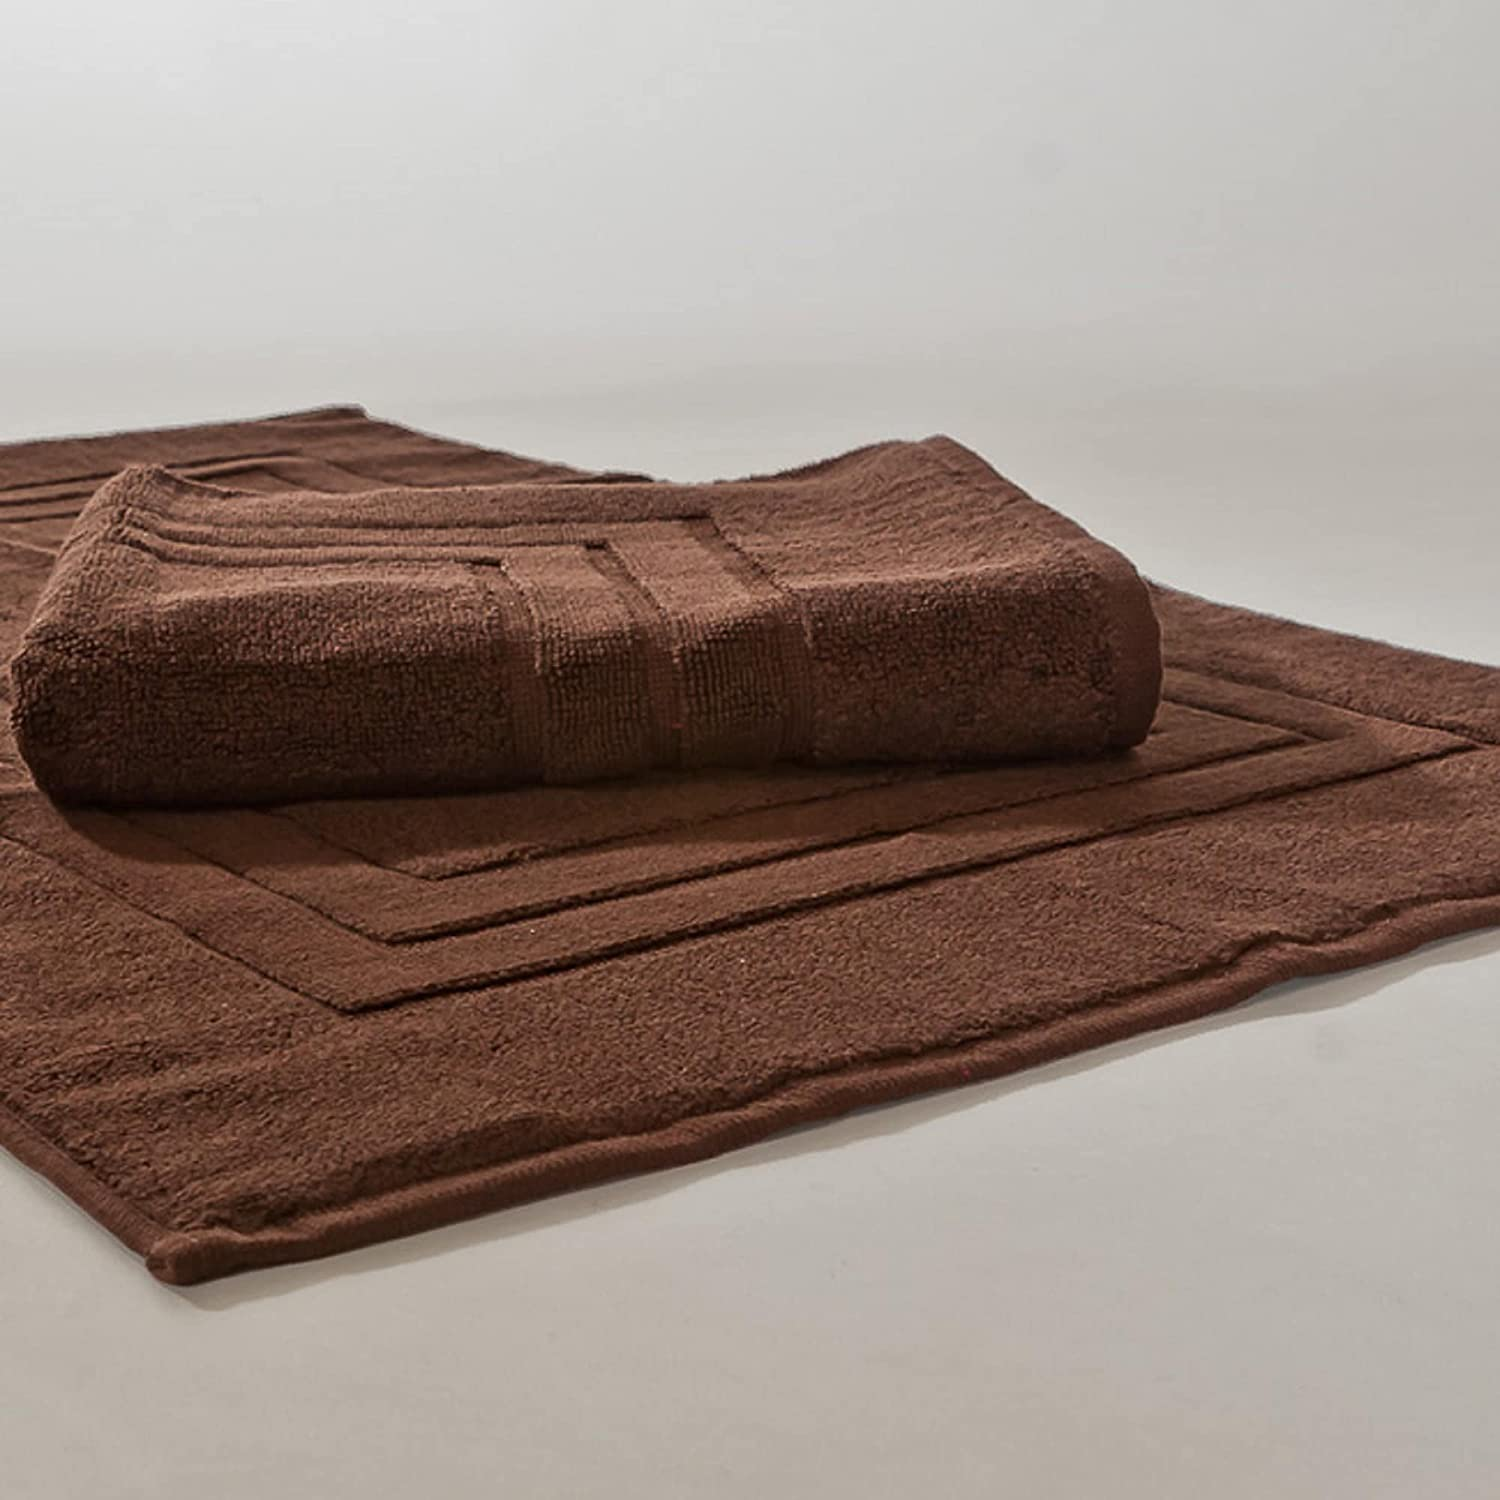 Homestead Textiles, Inc.. Homestead Textiles 900 GSM Bath Mats (Set of 2) Brown durable modeling